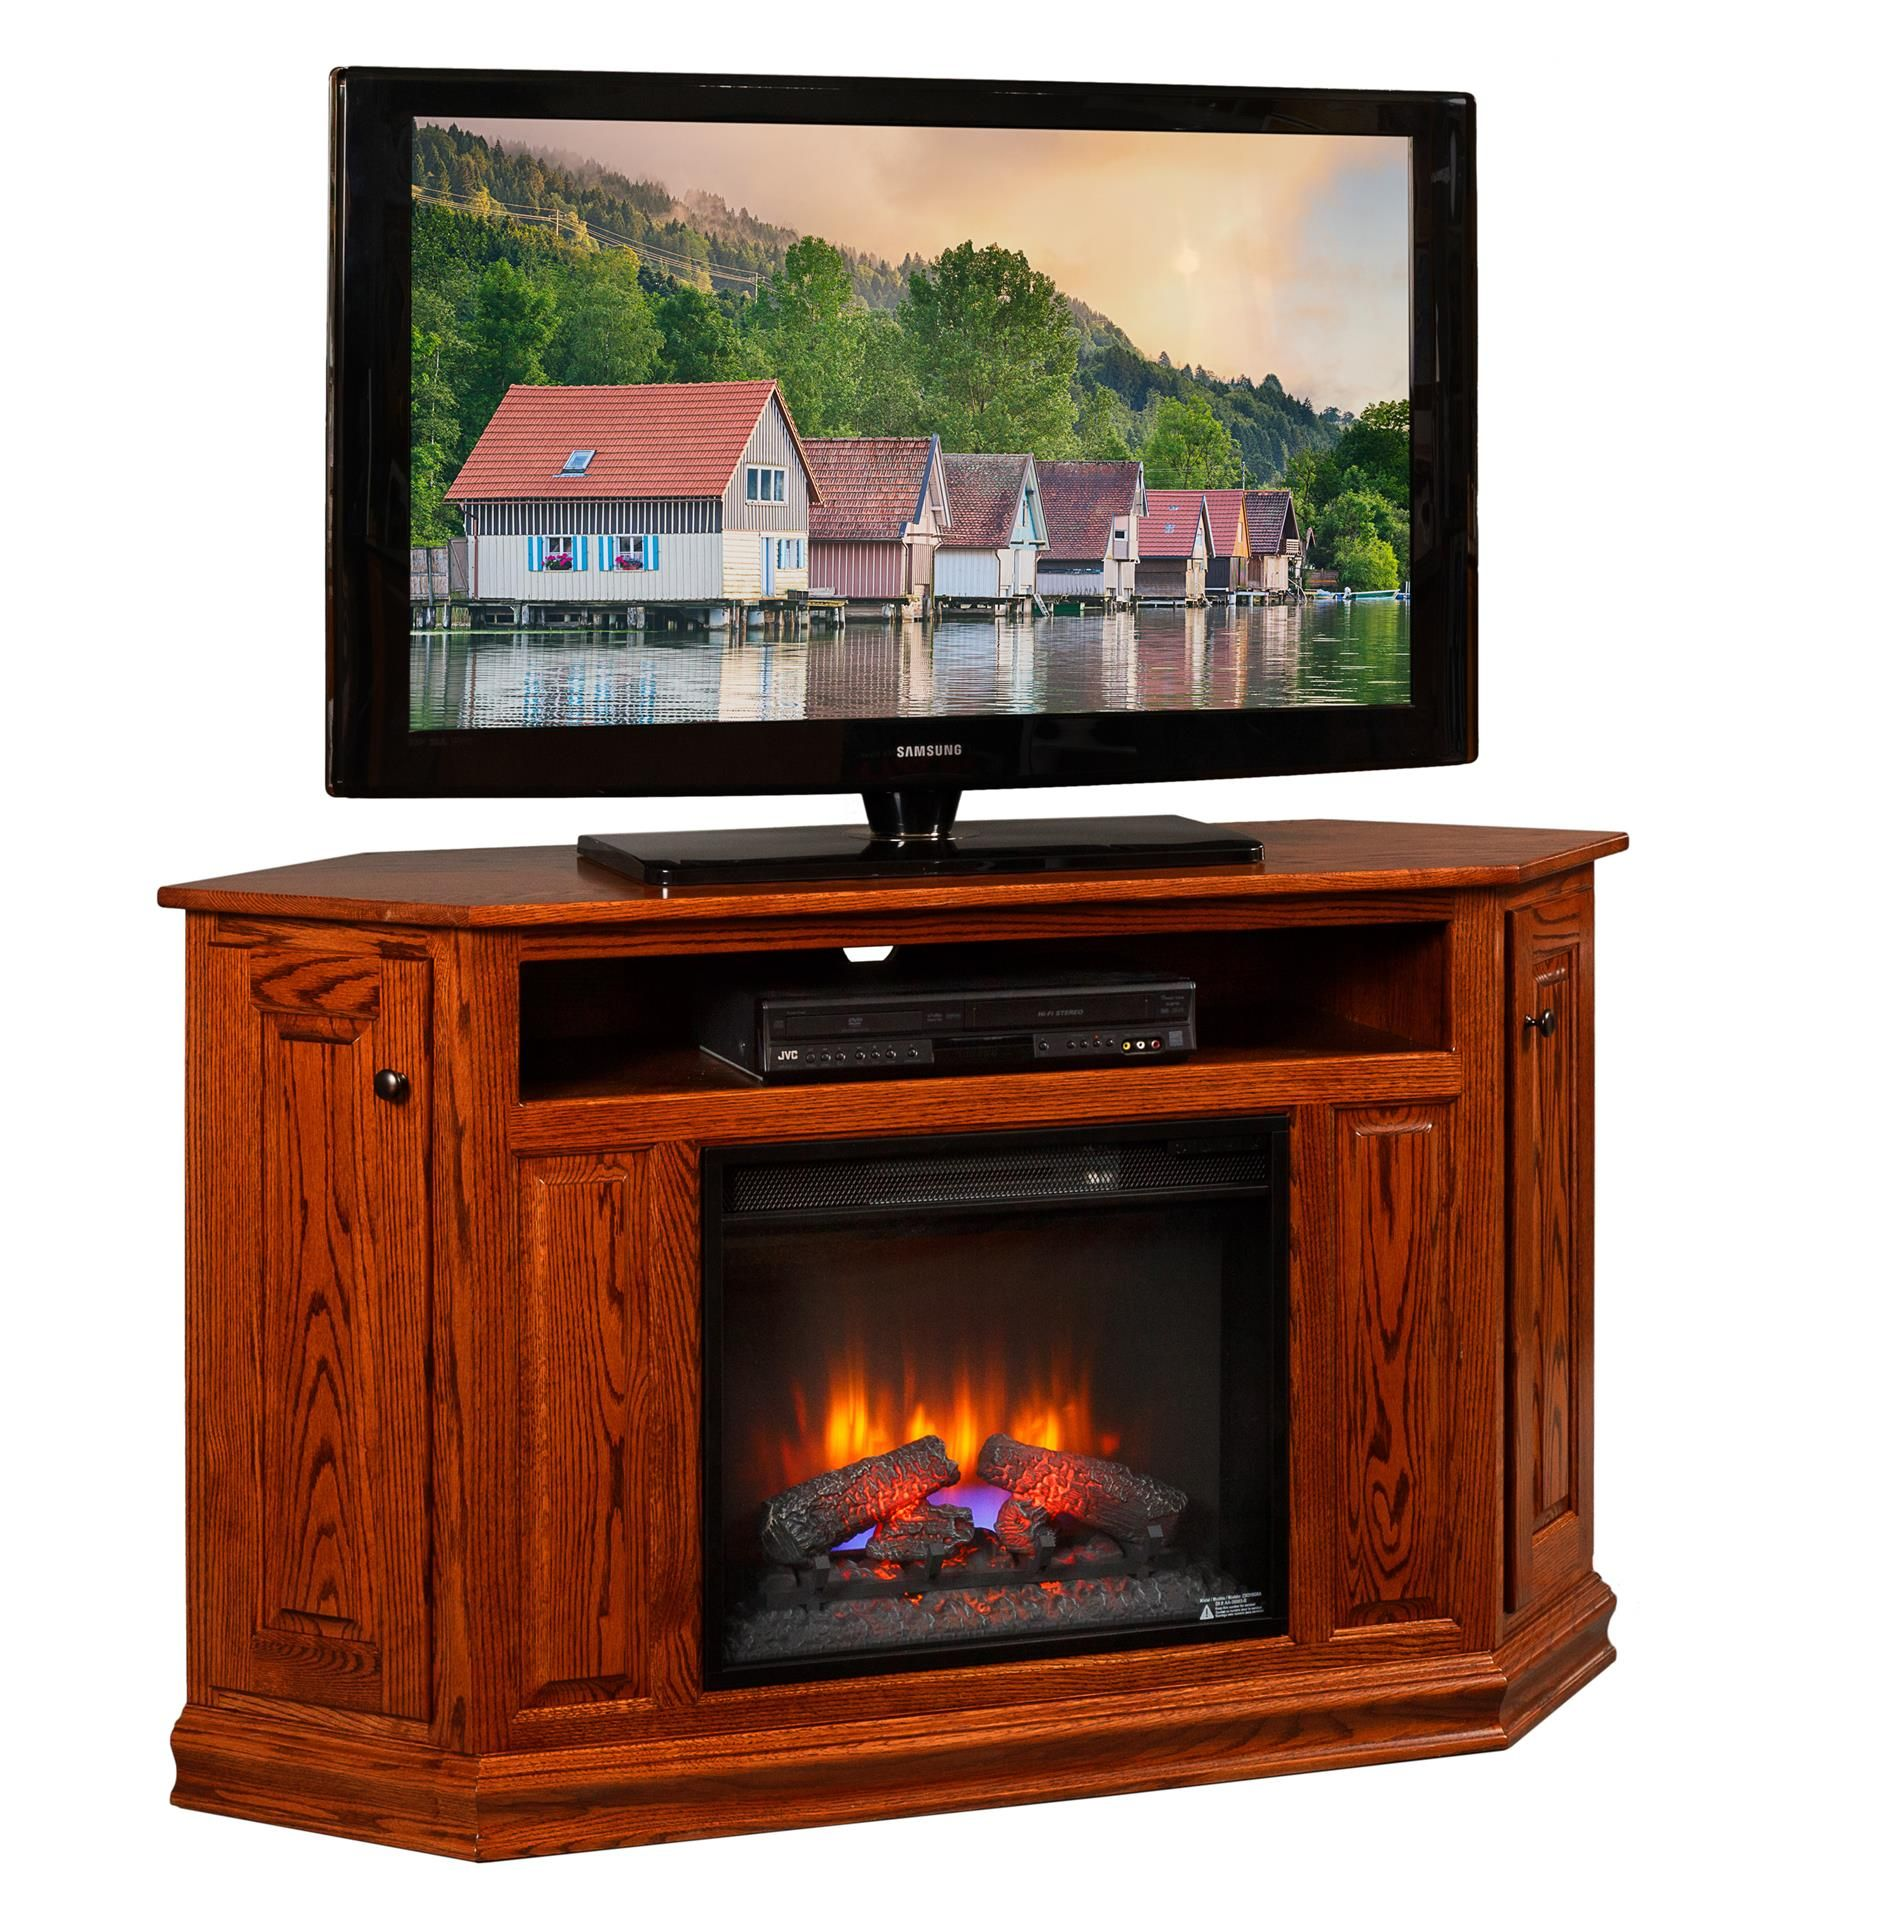 Tremendous Amish Corner Tv Console With 23 Insert Handcrafted Interior Design Ideas Apansoteloinfo